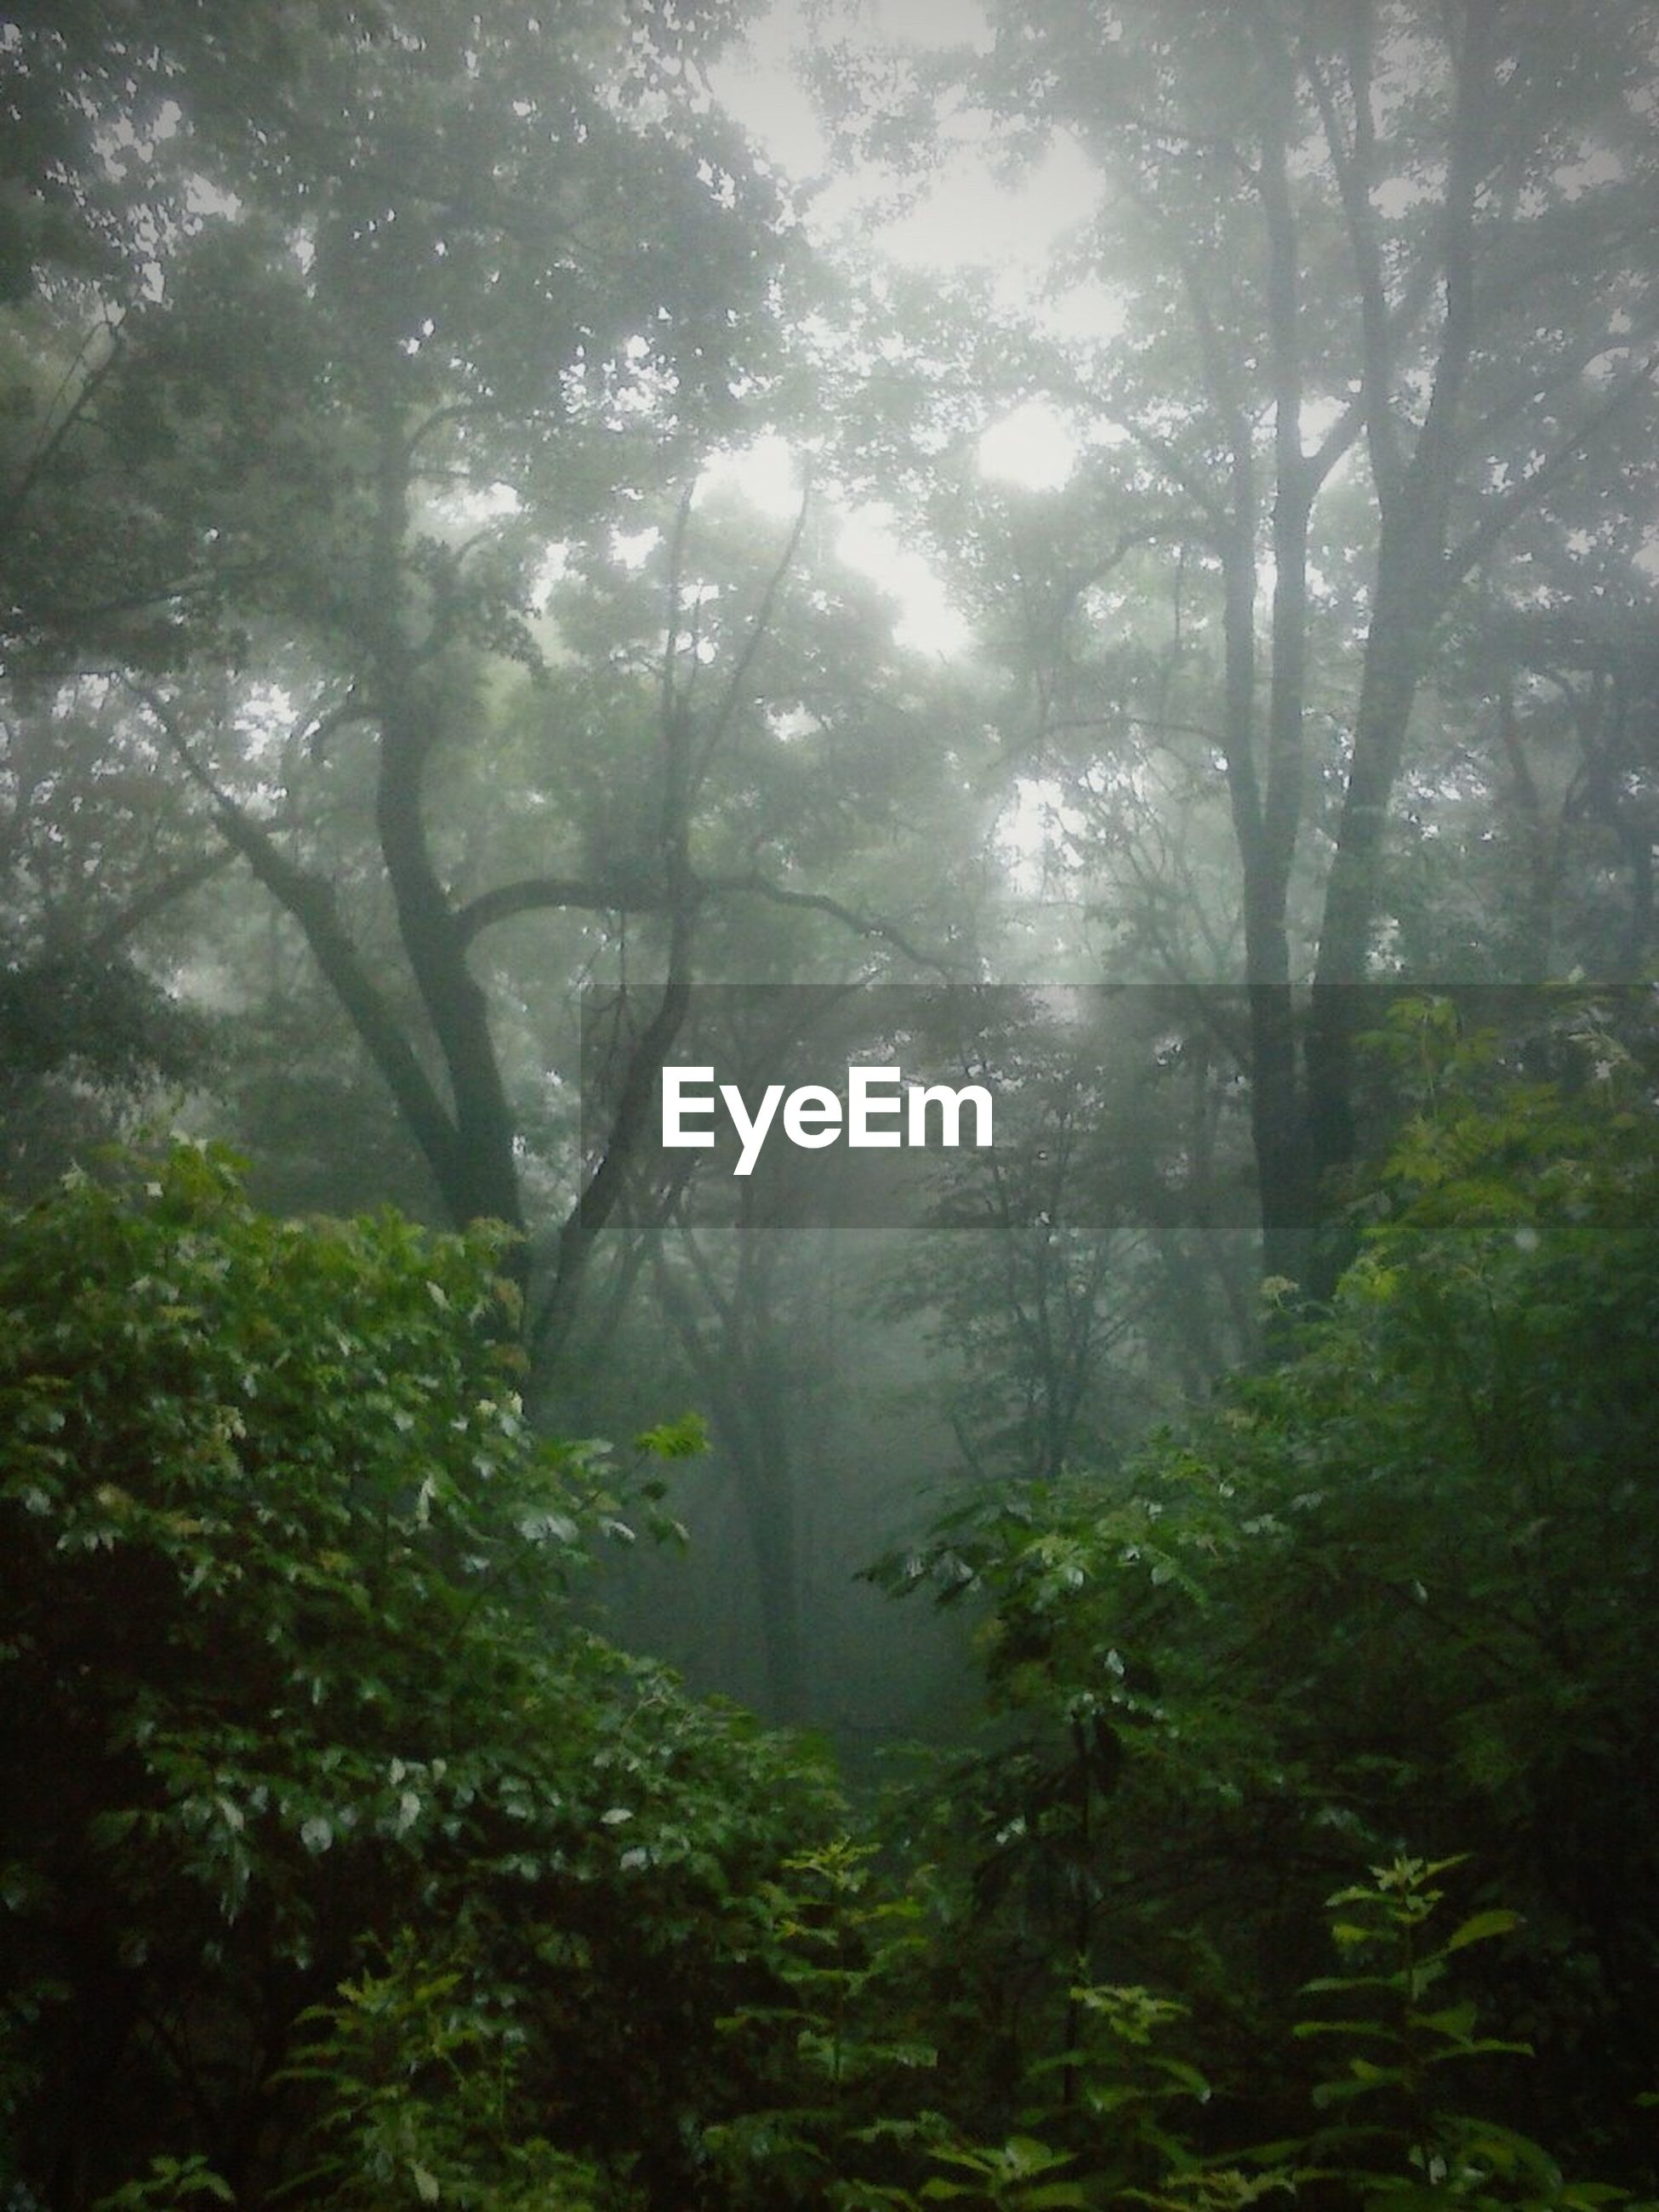 forest, tree, growth, tranquility, lush foliage, tranquil scene, fog, nature, plant, beauty in nature, environment, scenics, green color, tree trunk, non-urban scene, green, woodland, ethereal, foggy, woods, wilderness, sunbeam, branch, majestic, day, outdoors, back lit, remote, tourism, solitude, freshness